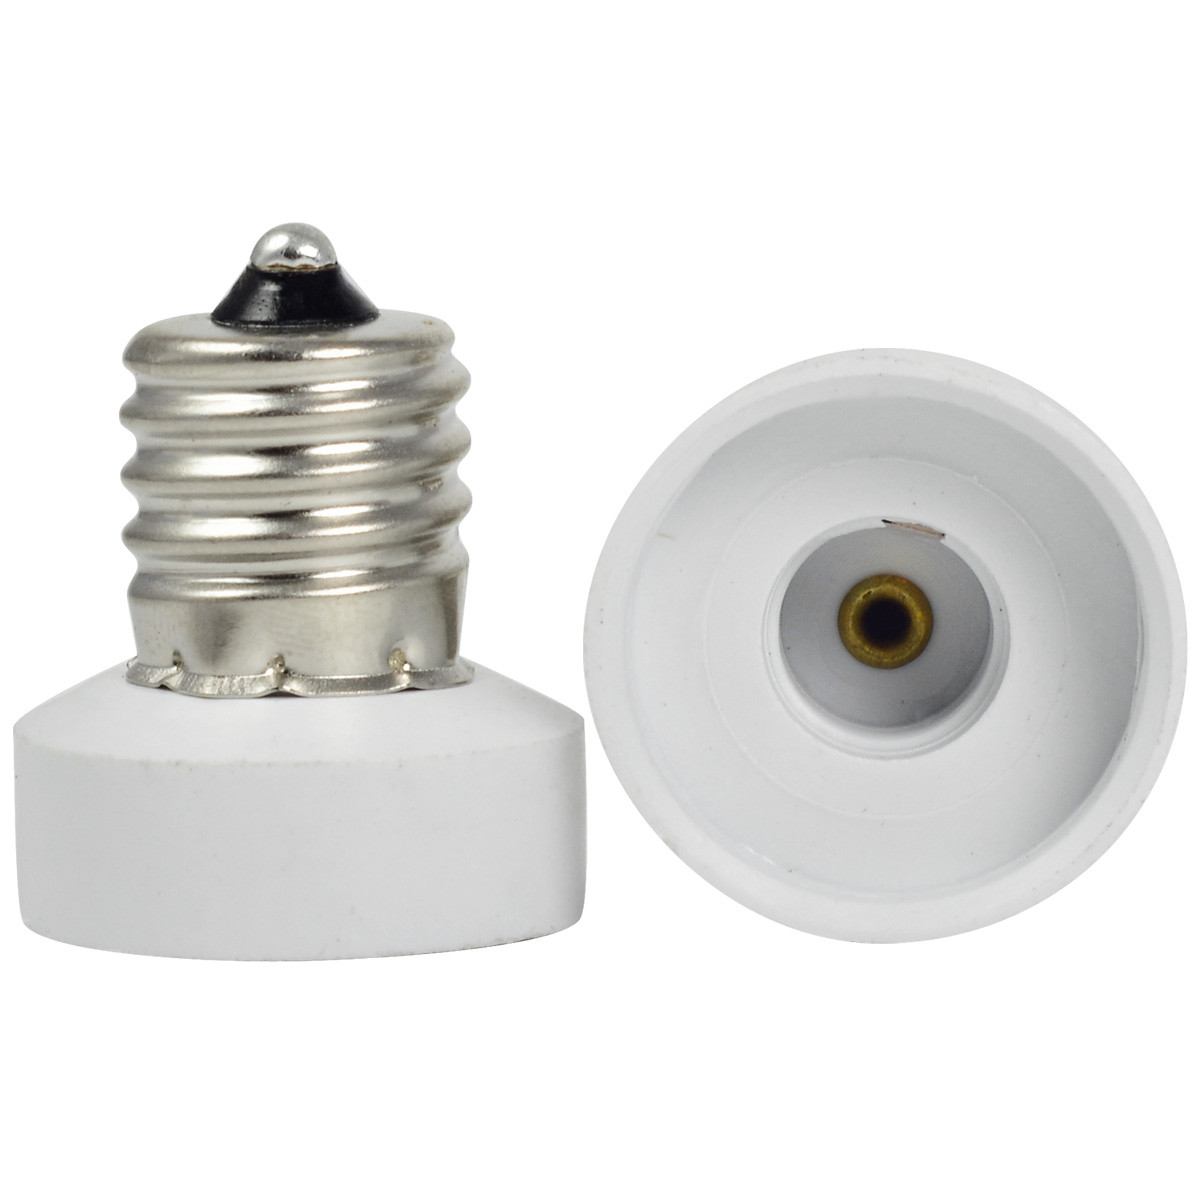 MENGS® E17 To E11 LED Light Bulb Lamp Socket Adaptor / Extender / Holder